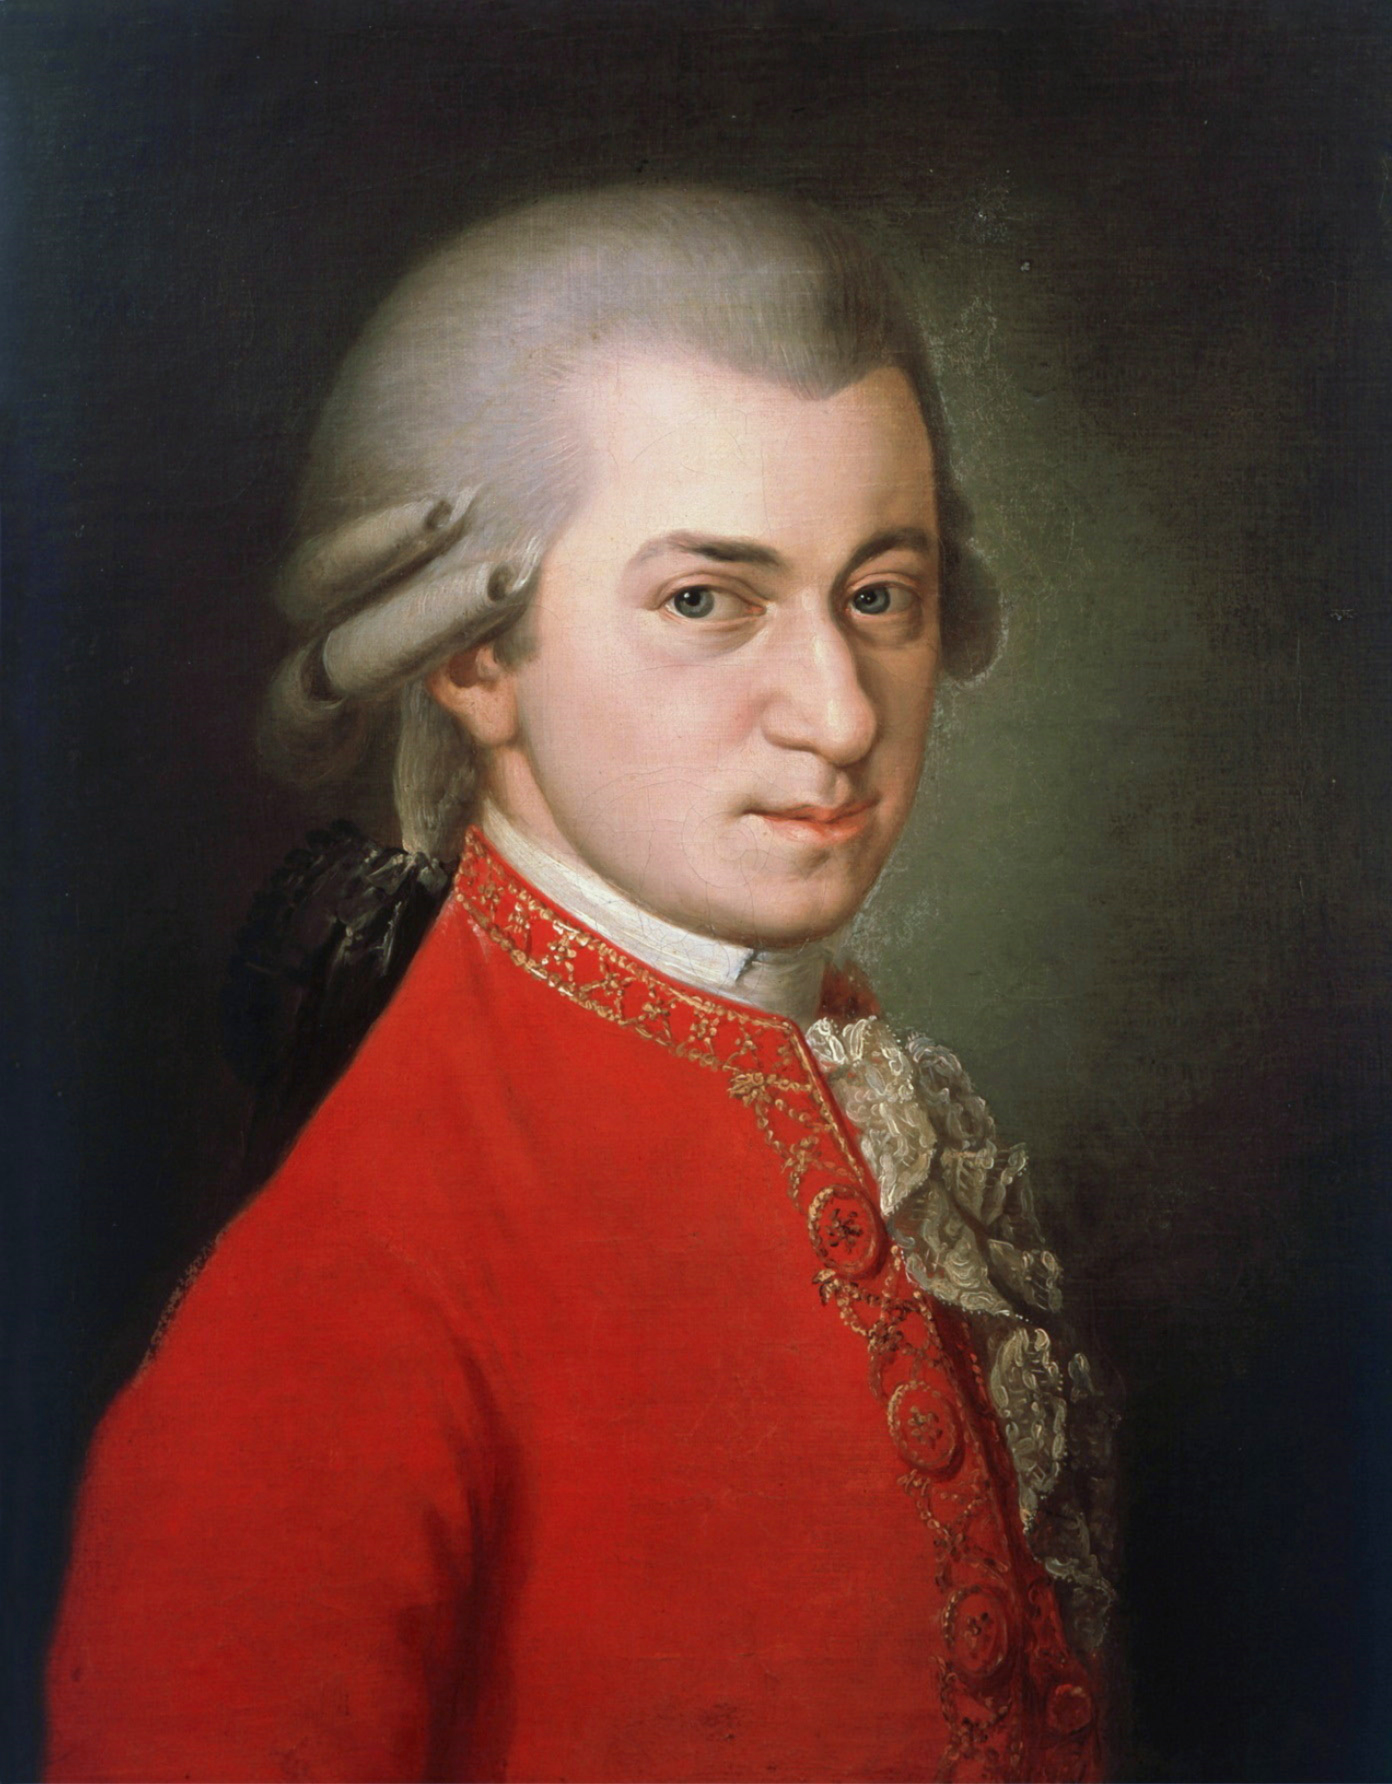 https://upload.wikimedia.org/wikipedia/commons/1/1e/Wolfgang-amadeus-mozart_1.jpg